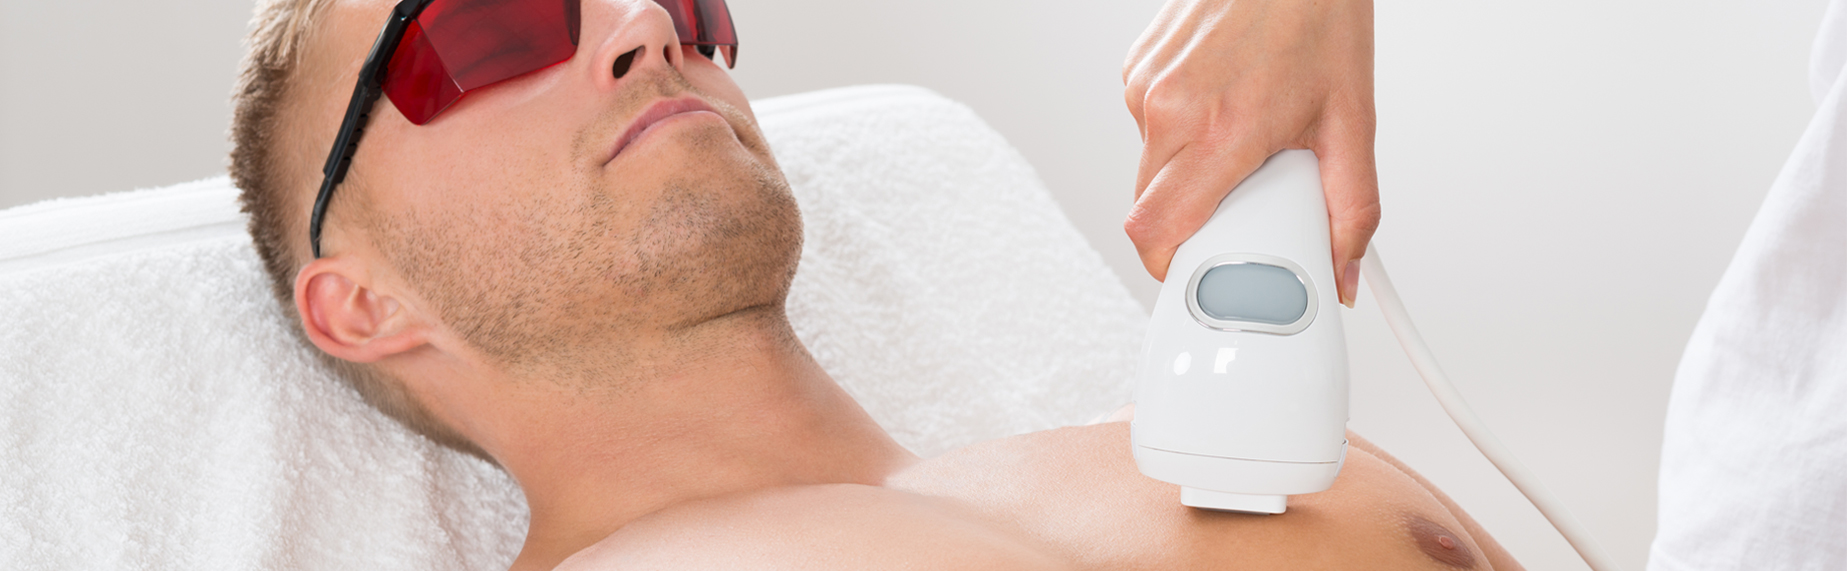 laser-hair-removal-for-men-laser-hair-removal-areas-new_02-1